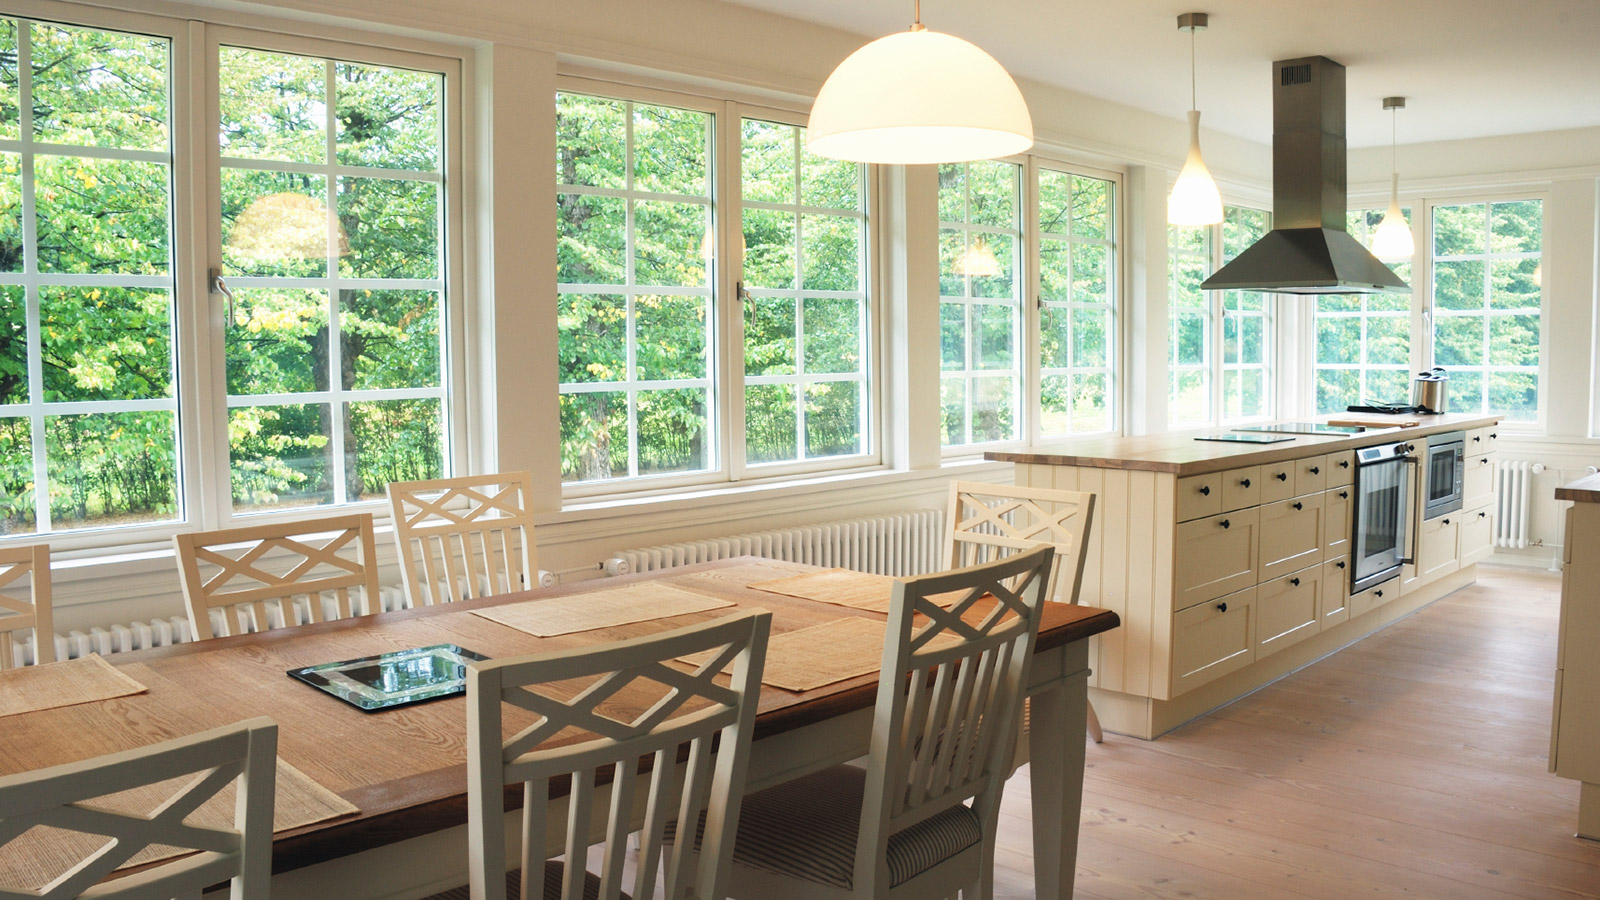 Beautiful Kitchen & Dining room - Replacement Windows in Arizona - Energy Shield Windows and Doors